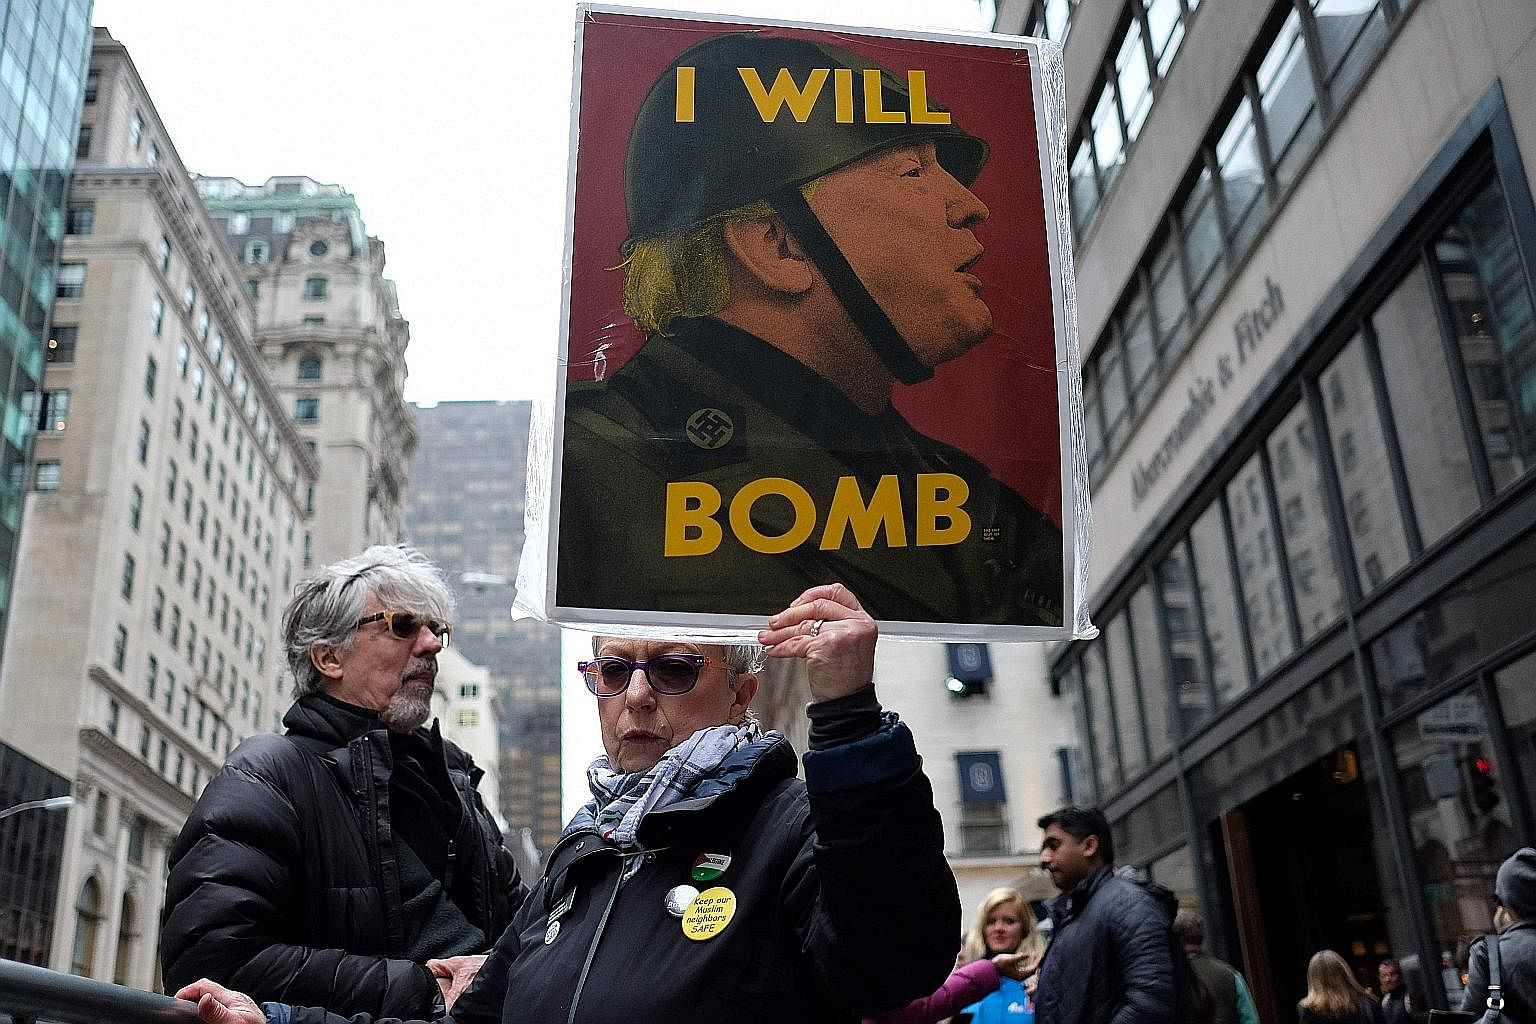 An anti-war protester displaying a placard decrying the US air strike on Syria on Friday. President Donald Trump launched a strike on an airfield in retaliation for Syria's use of chemical weapons last week.